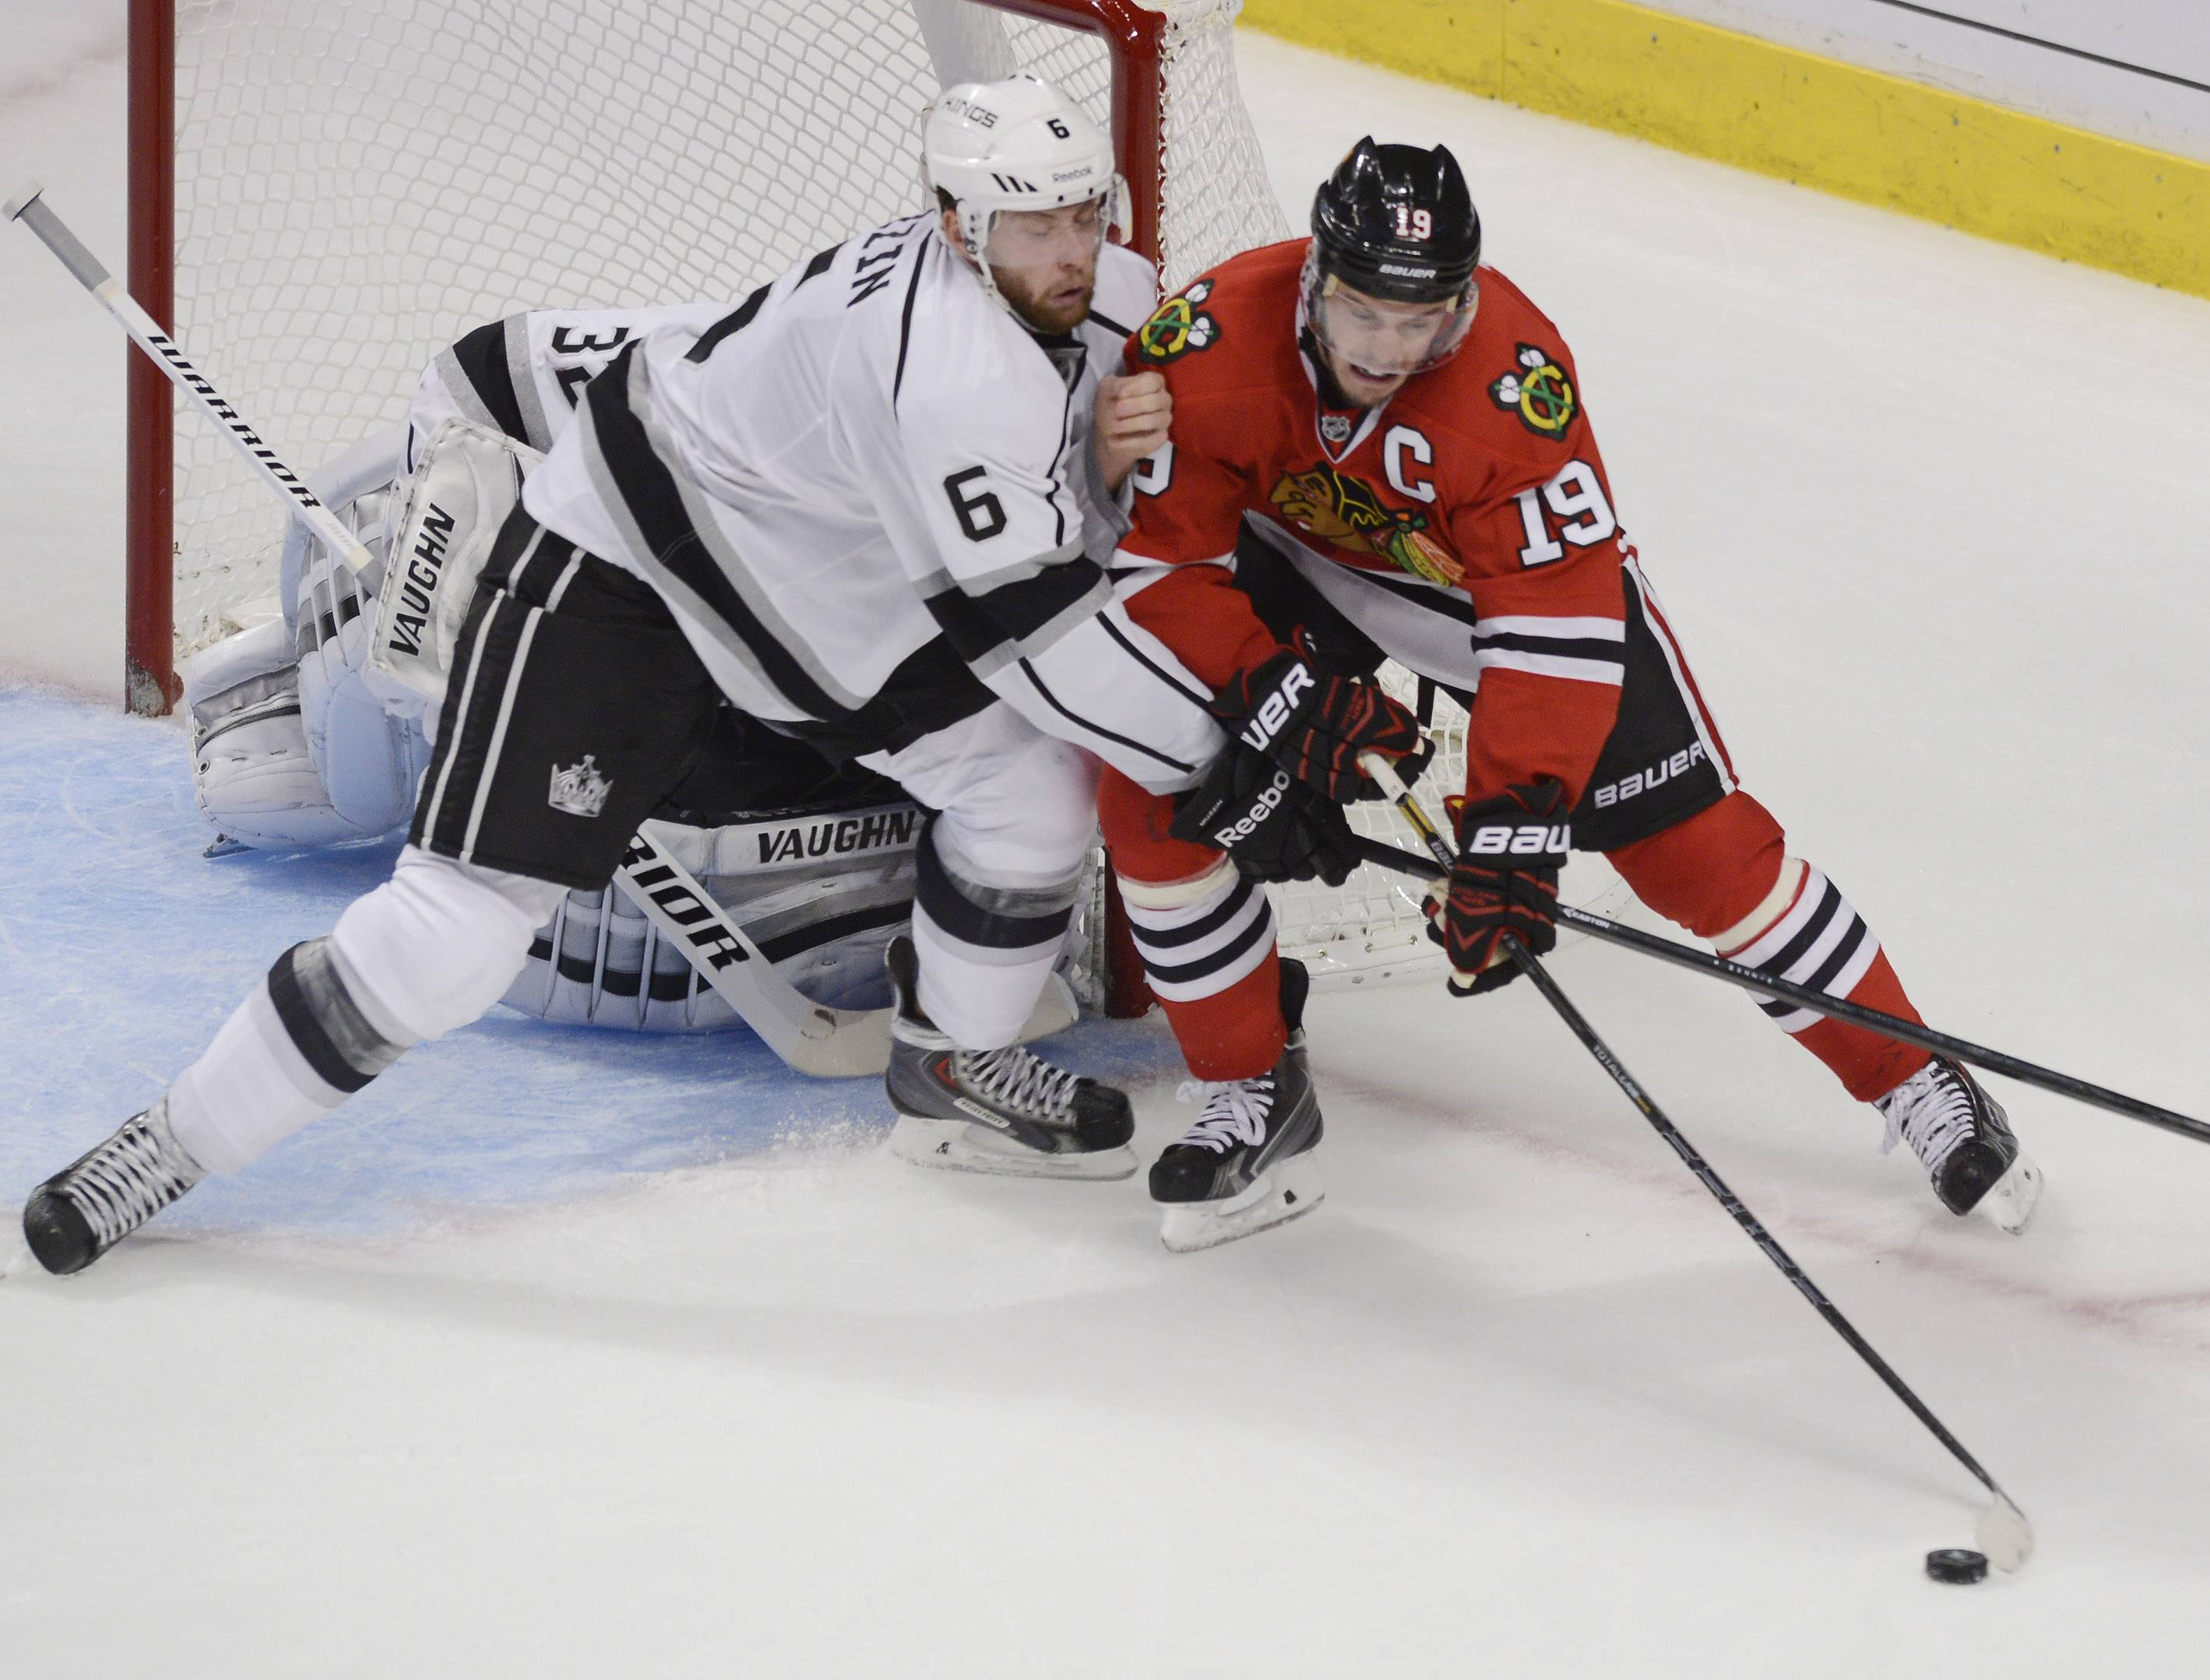 Chicago Blackhawks center Jonathan Toews, right, gets hit in front of the net by Los Angeles Kings defenseman Jake Muzzin during Sunday's game at the United Center in Chicago.